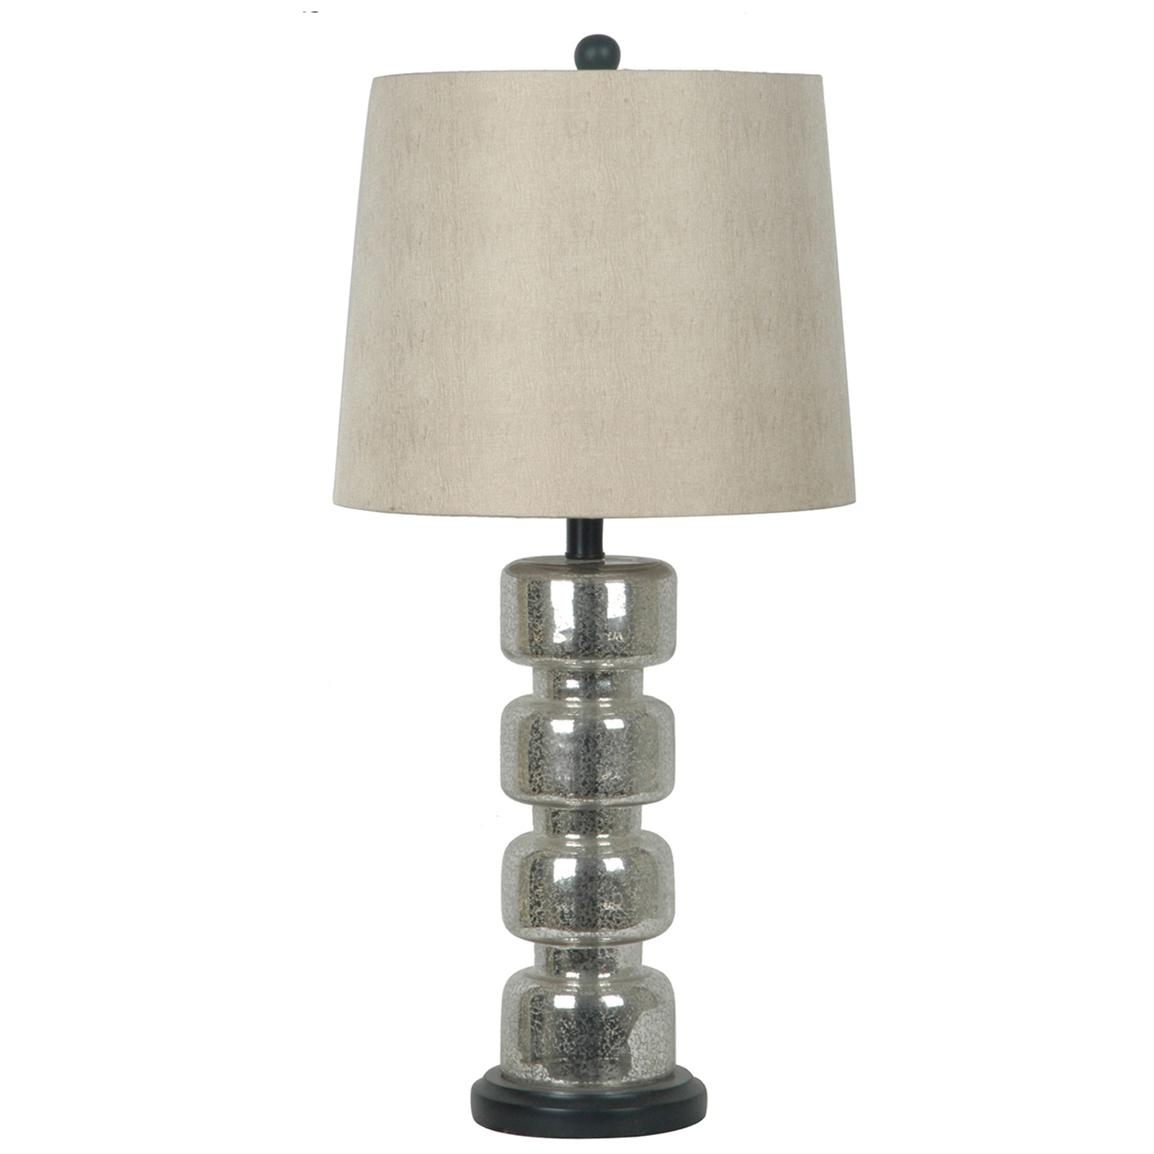 Lennox Table Lamp from Crestview Collection